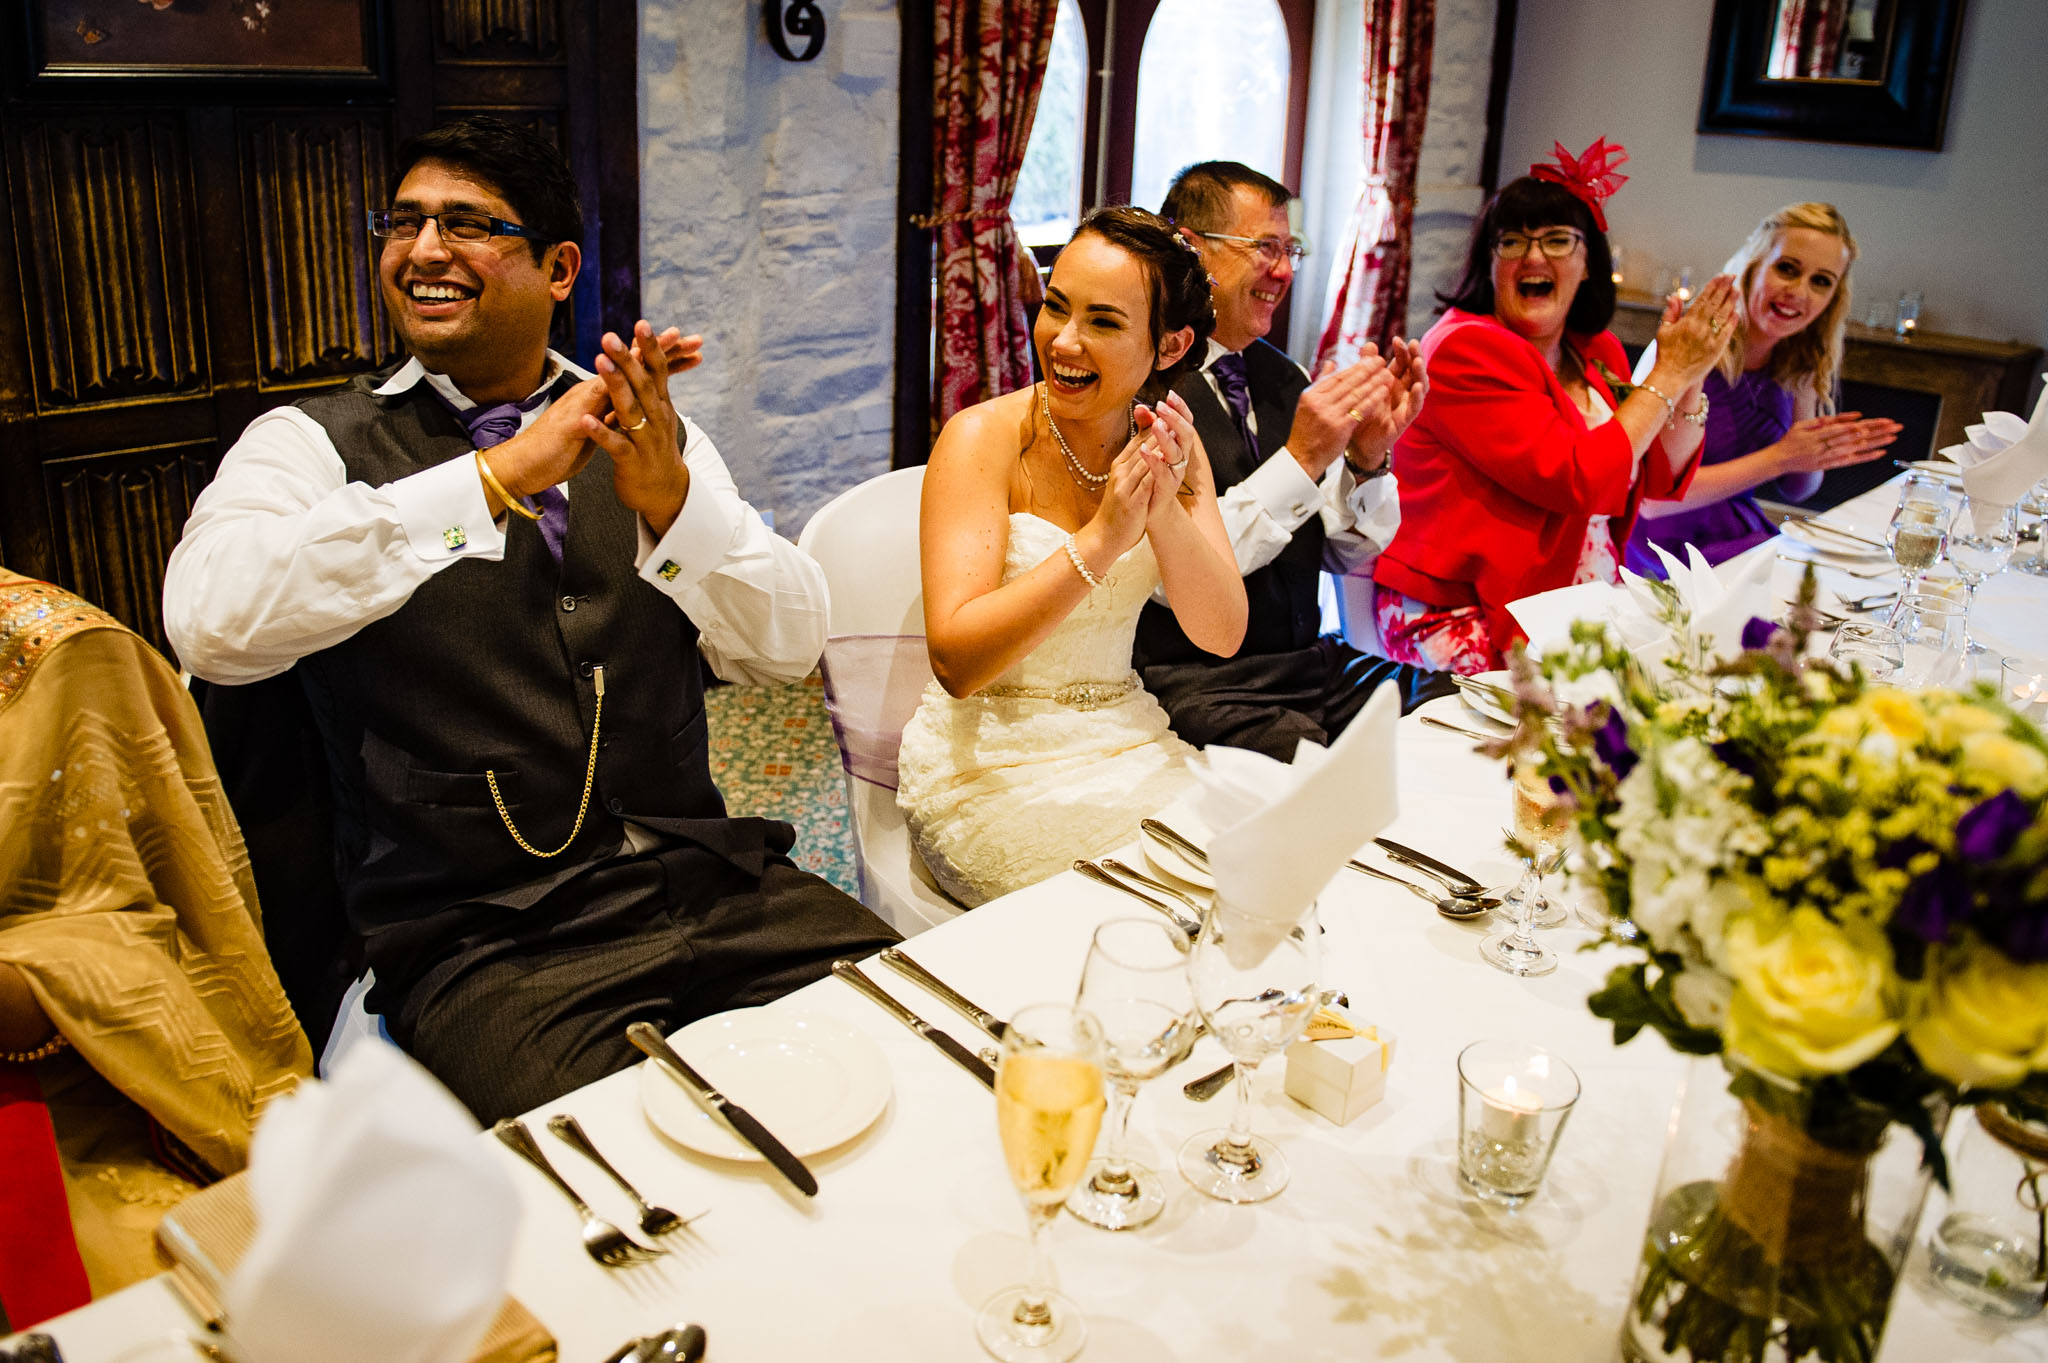 The head table claps during the wedding speeches